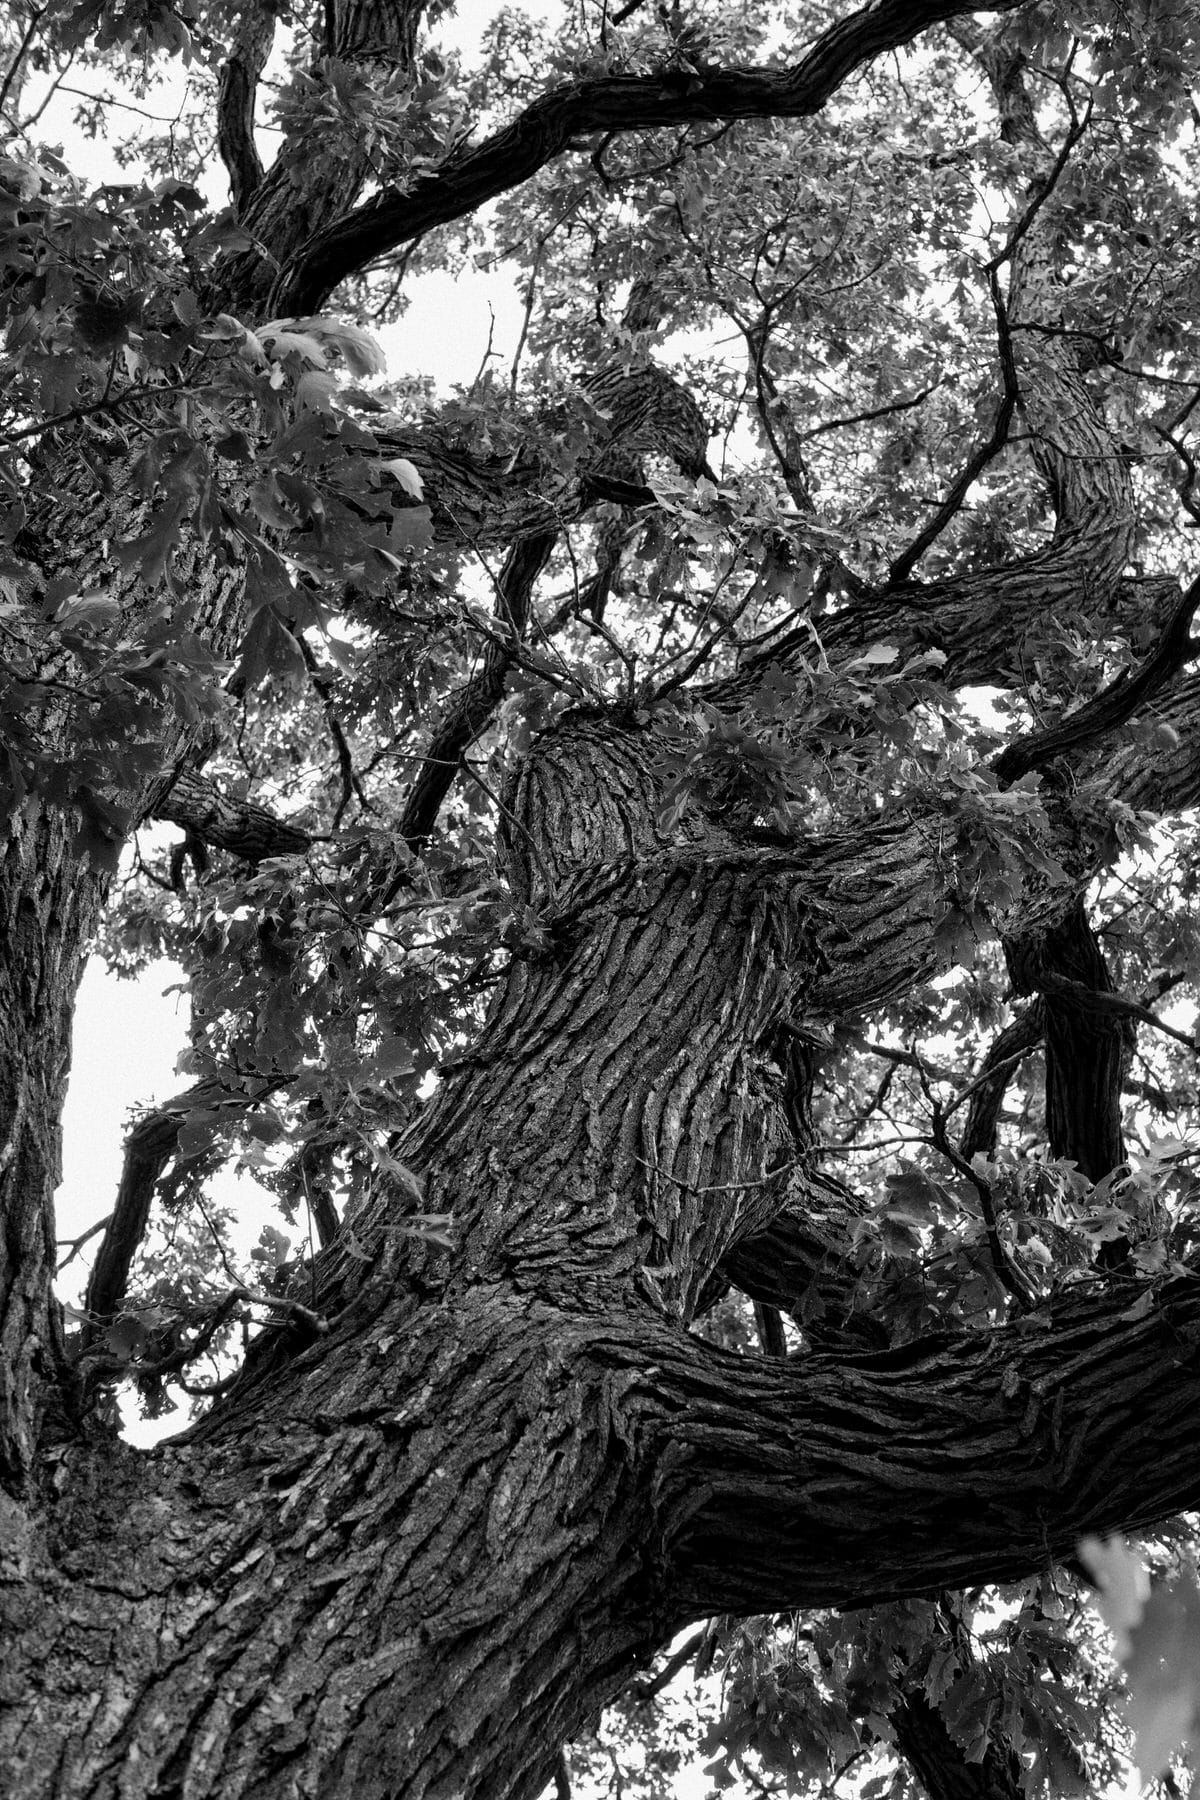 Oak-Tree-Fond-du-Lac-Wisconsin-black-and-white-fine-art-photography-by-Studio-L-photographer-Laura-Schneider-_12048